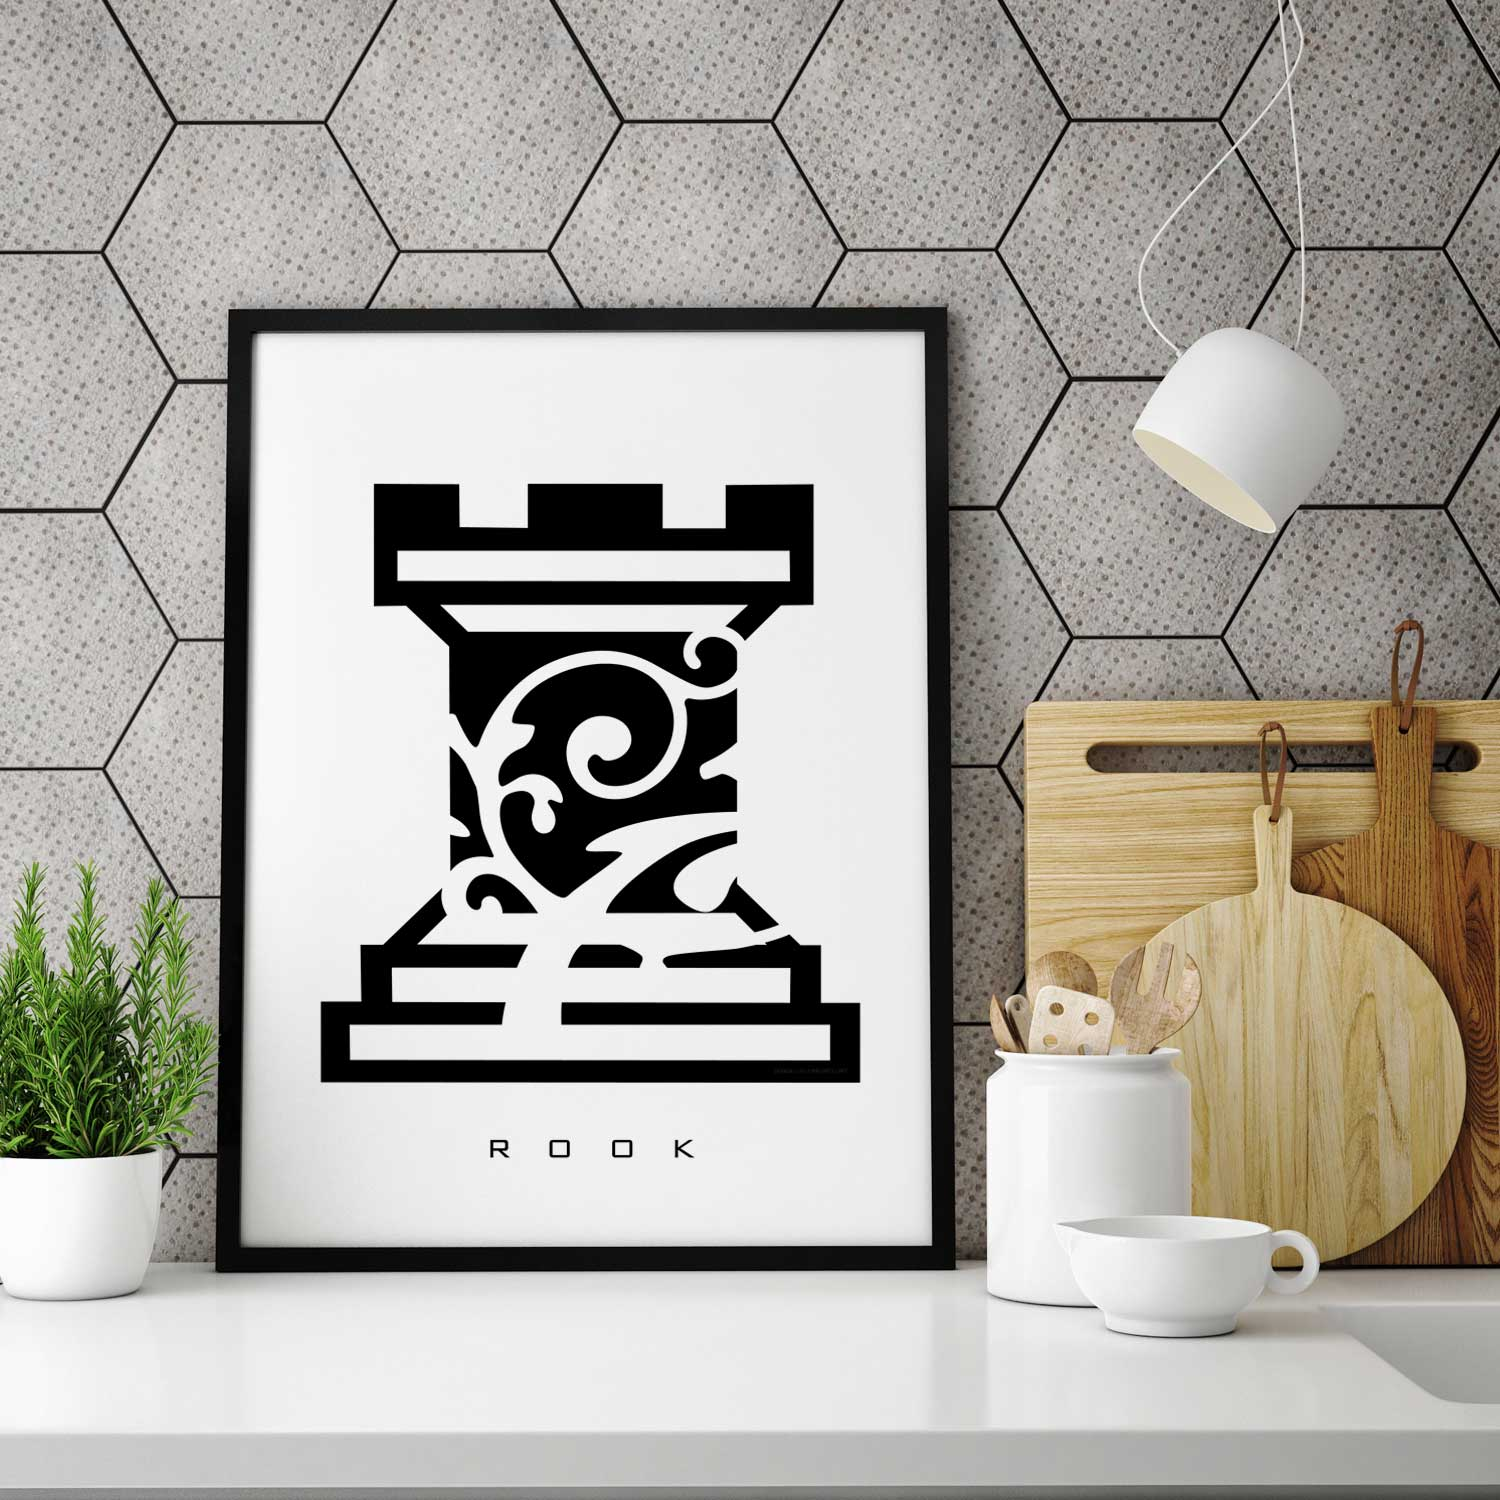 ROOK - Chess Piece - Wall Decor